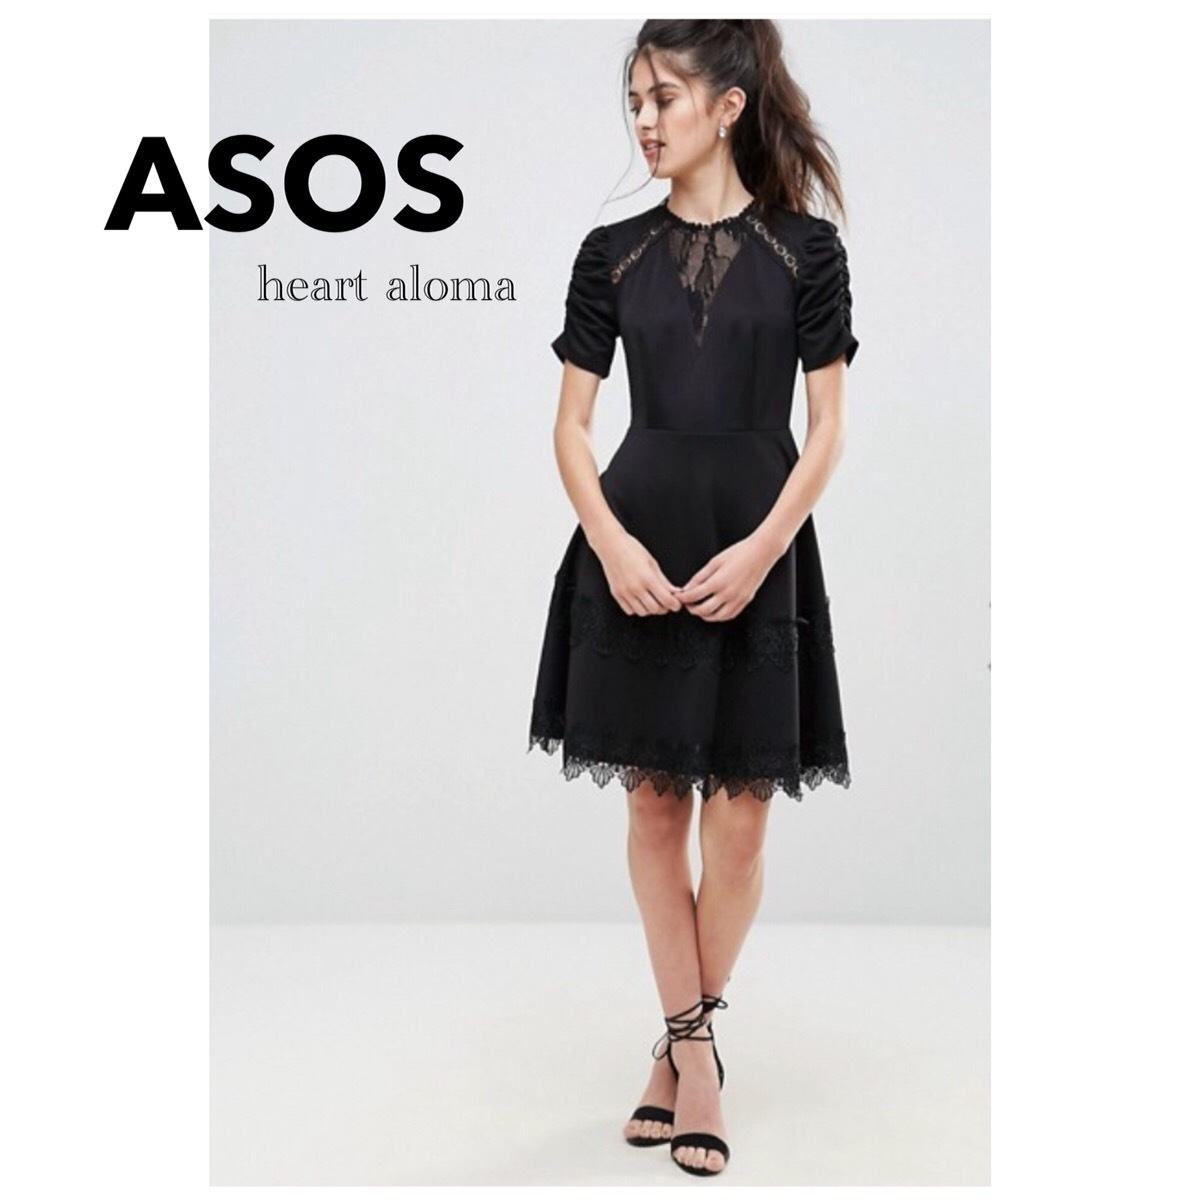 *ASOS* Club L Detailed Crochet & Lace Skater Dress